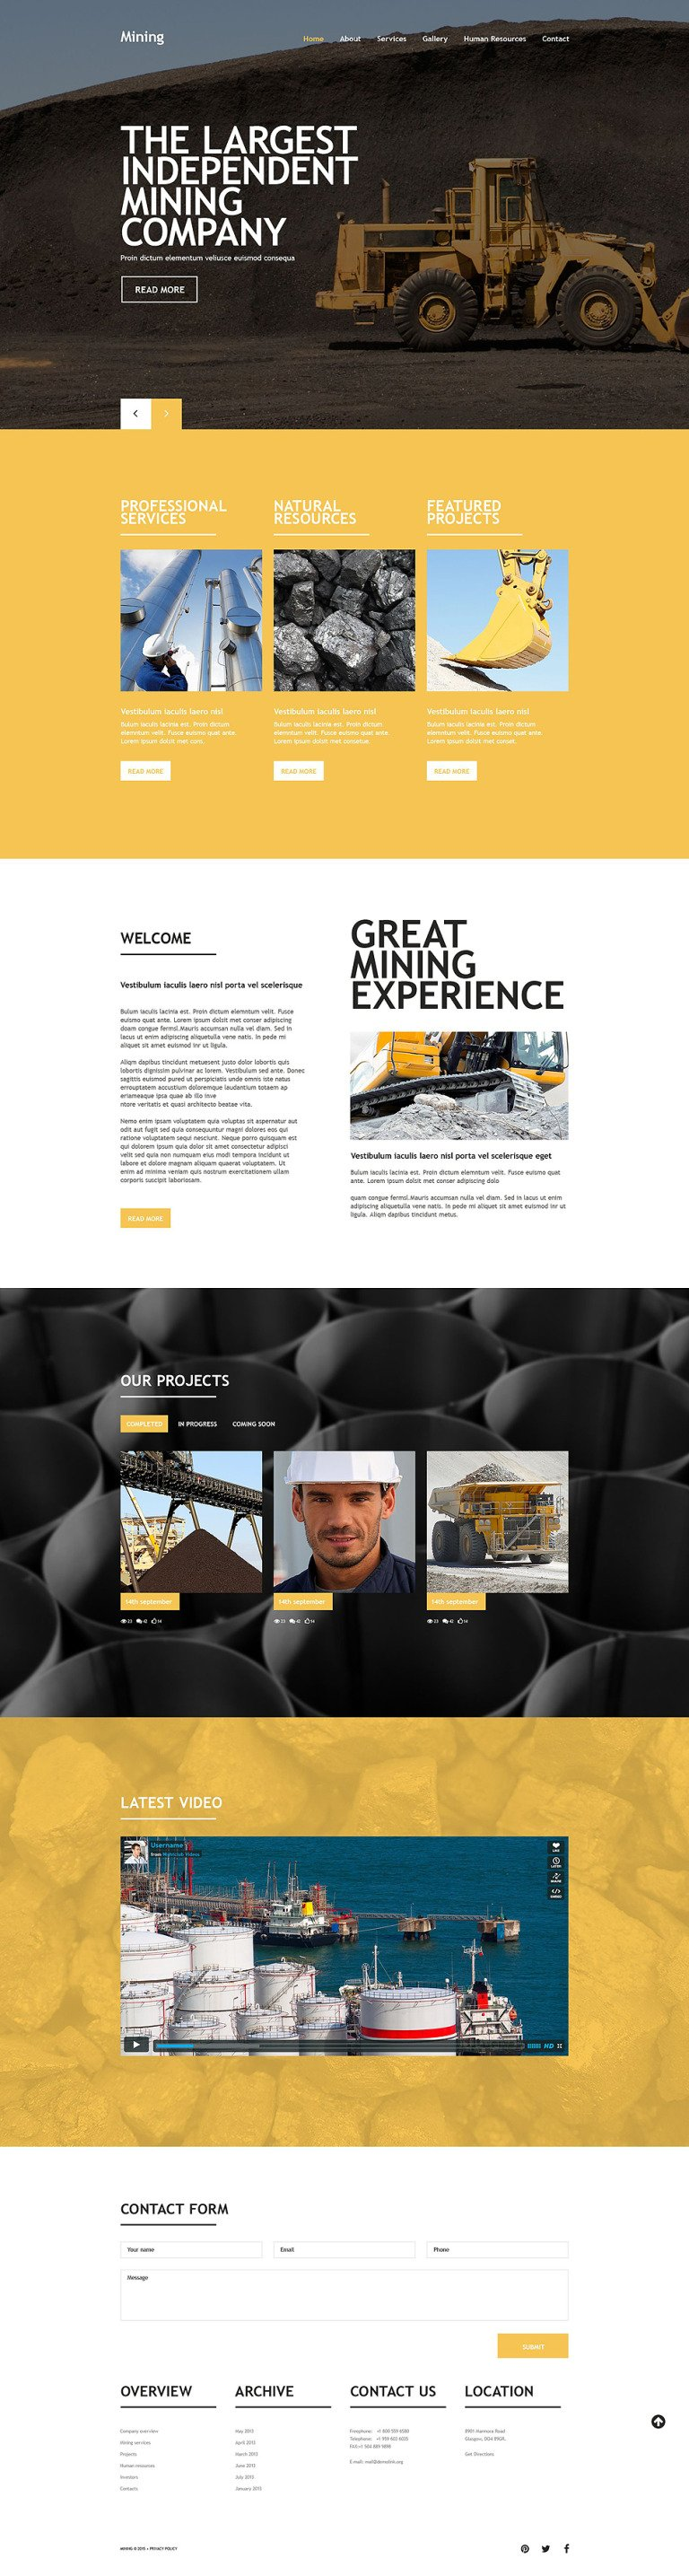 Mining Company Website Template New Screenshots BIG